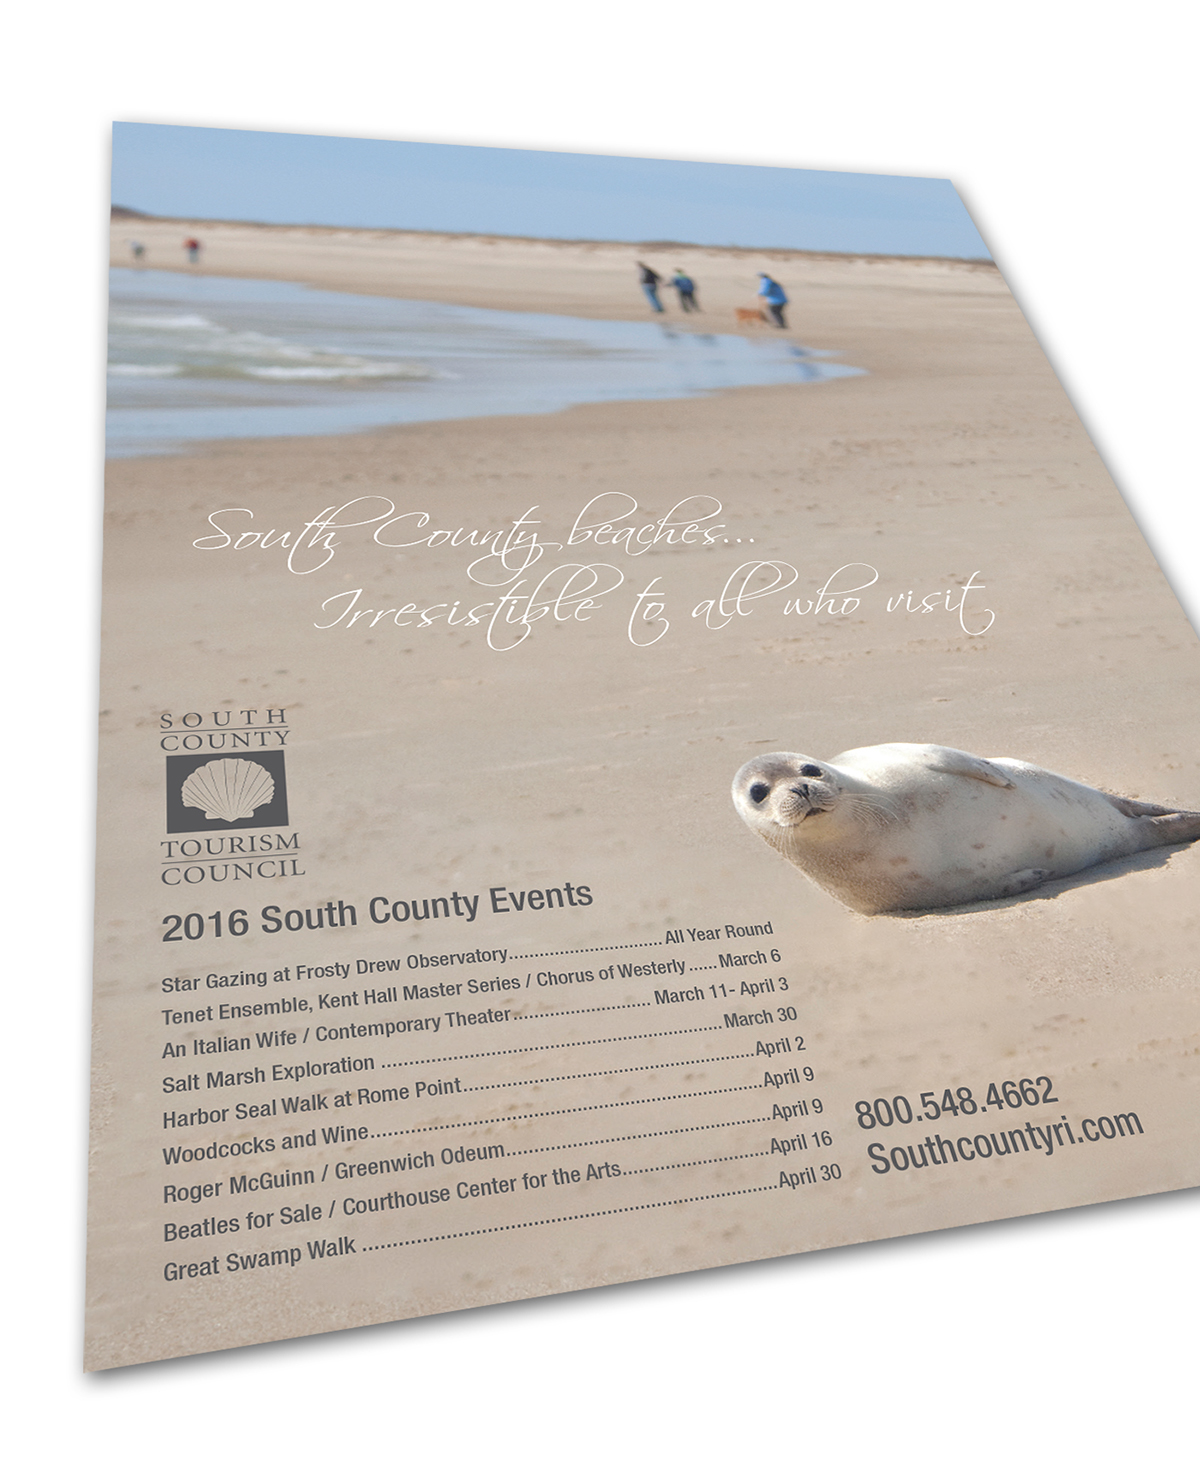 National Magazine Ads - South County Tourism Council on Behance